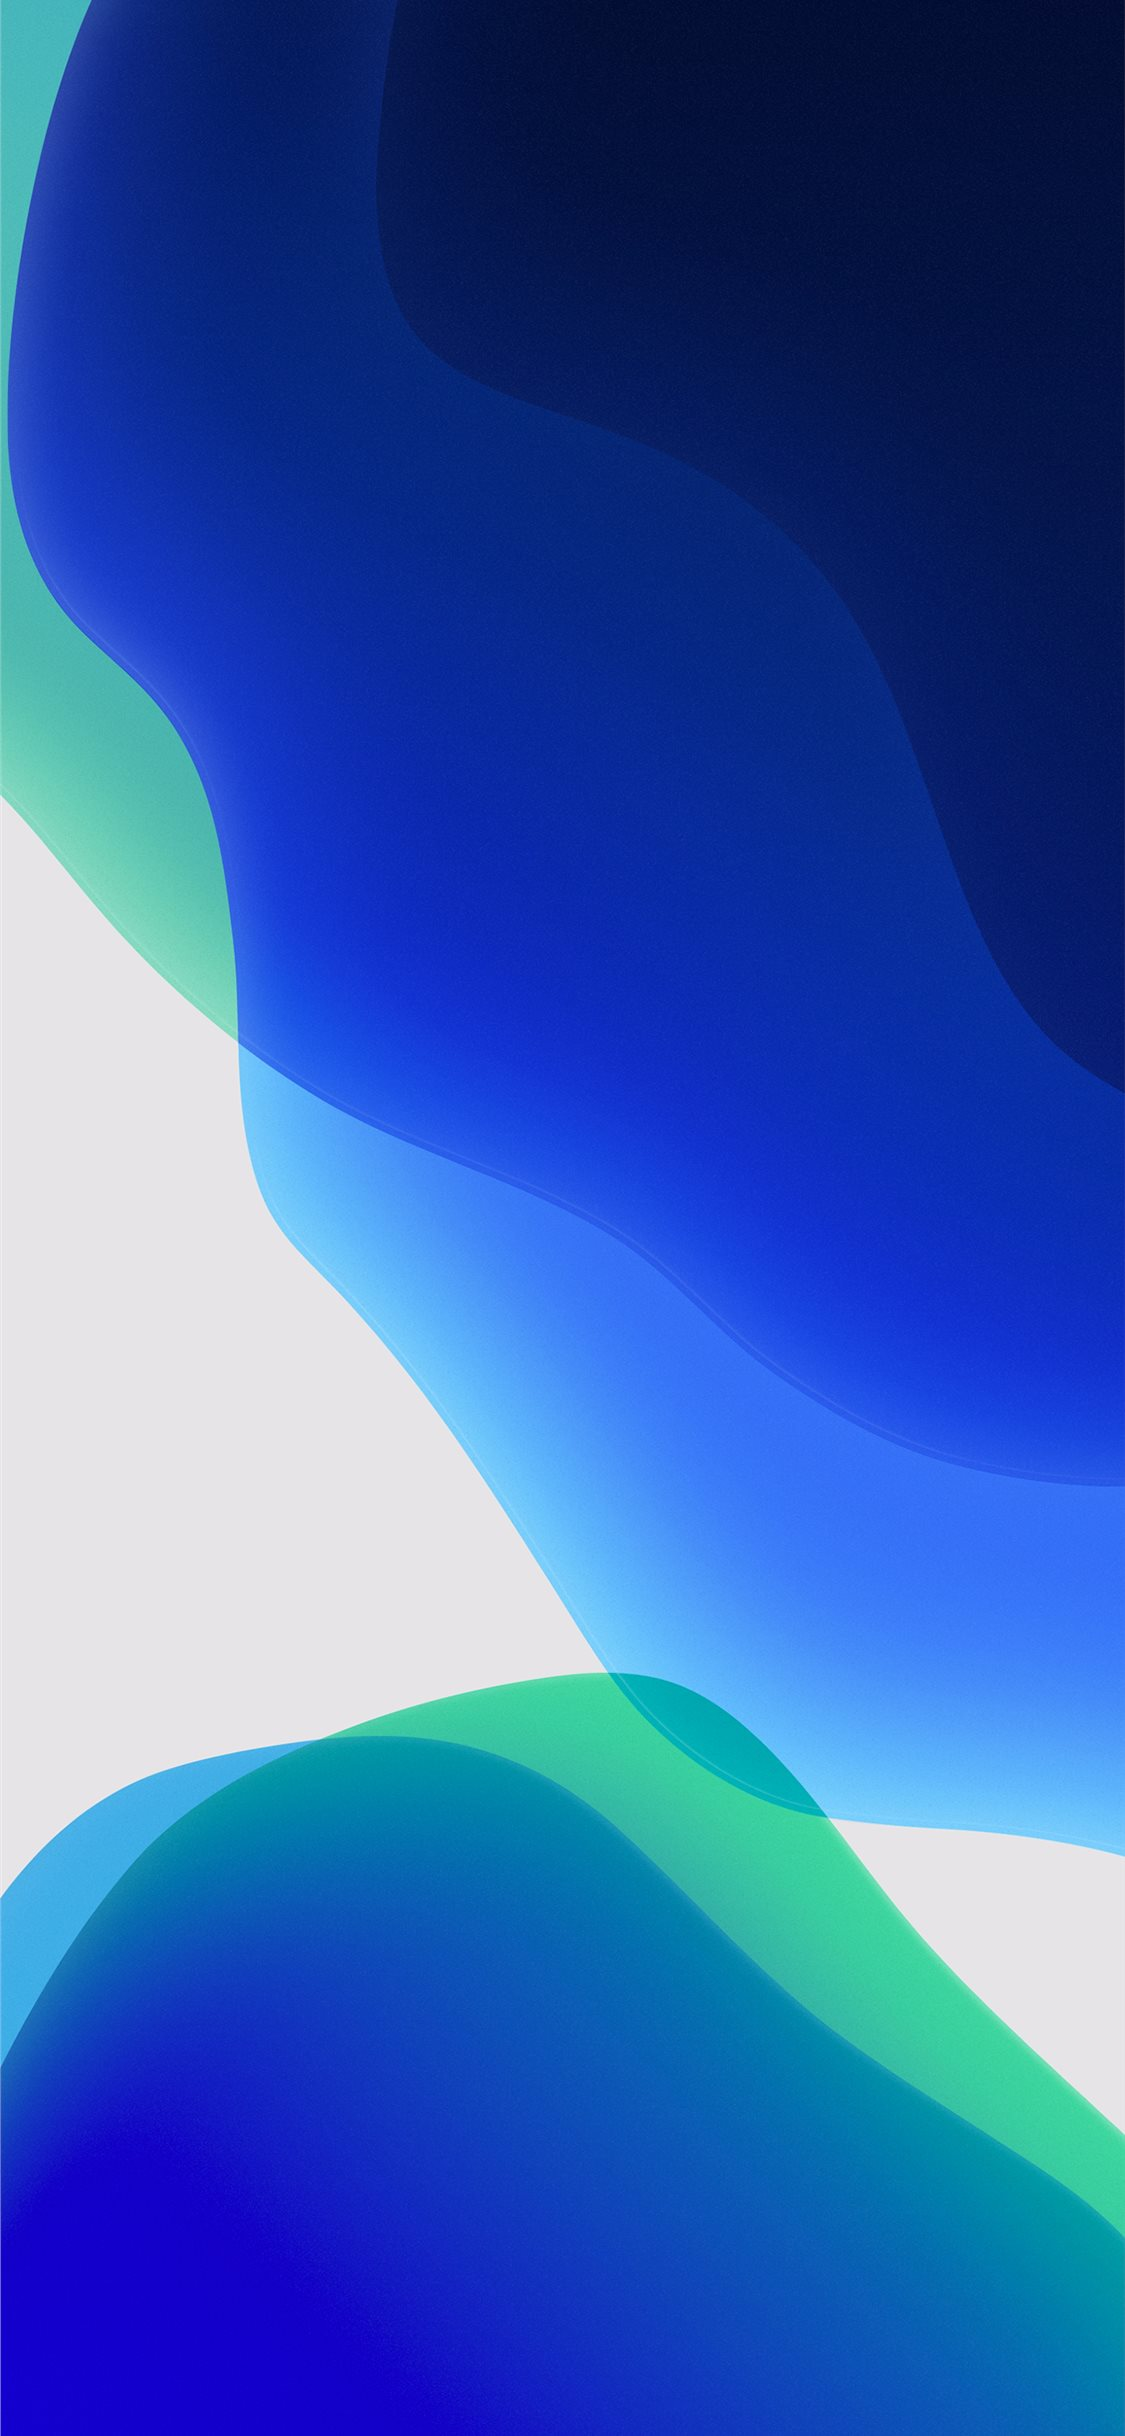 Ios 13 Iphone X Wallpapers Free Download